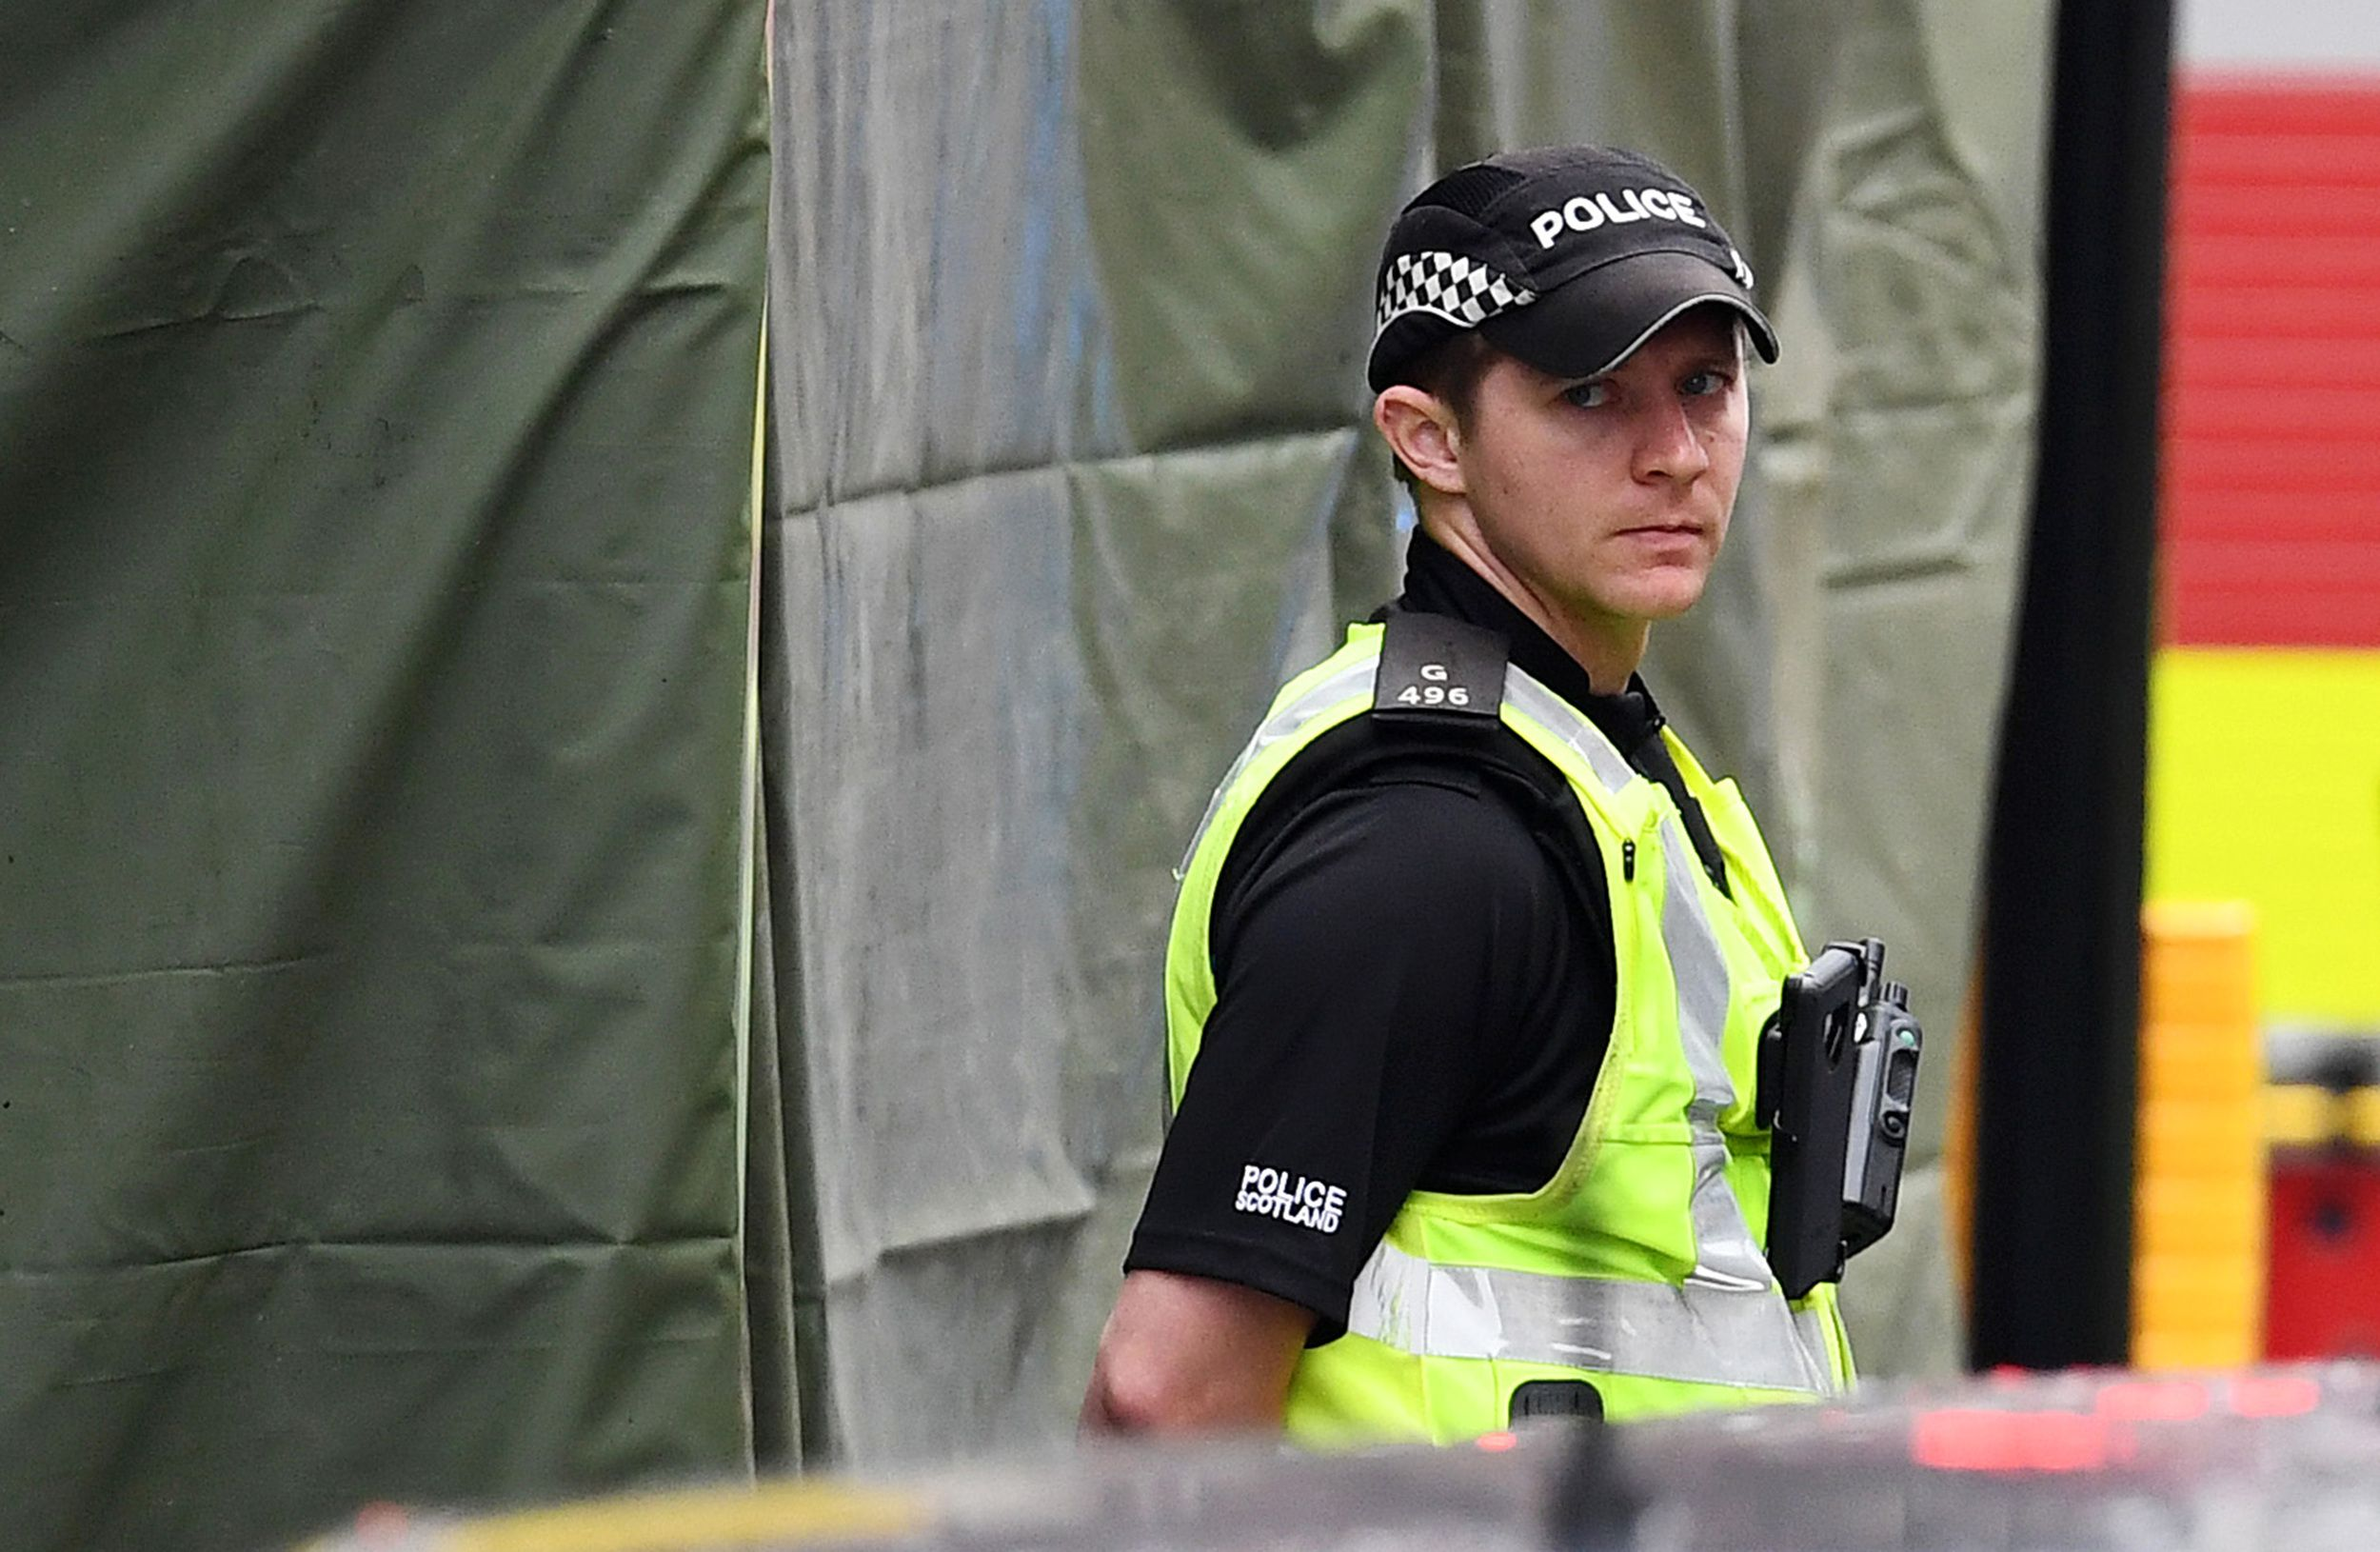 A police officer stands in front of a cordoned off area